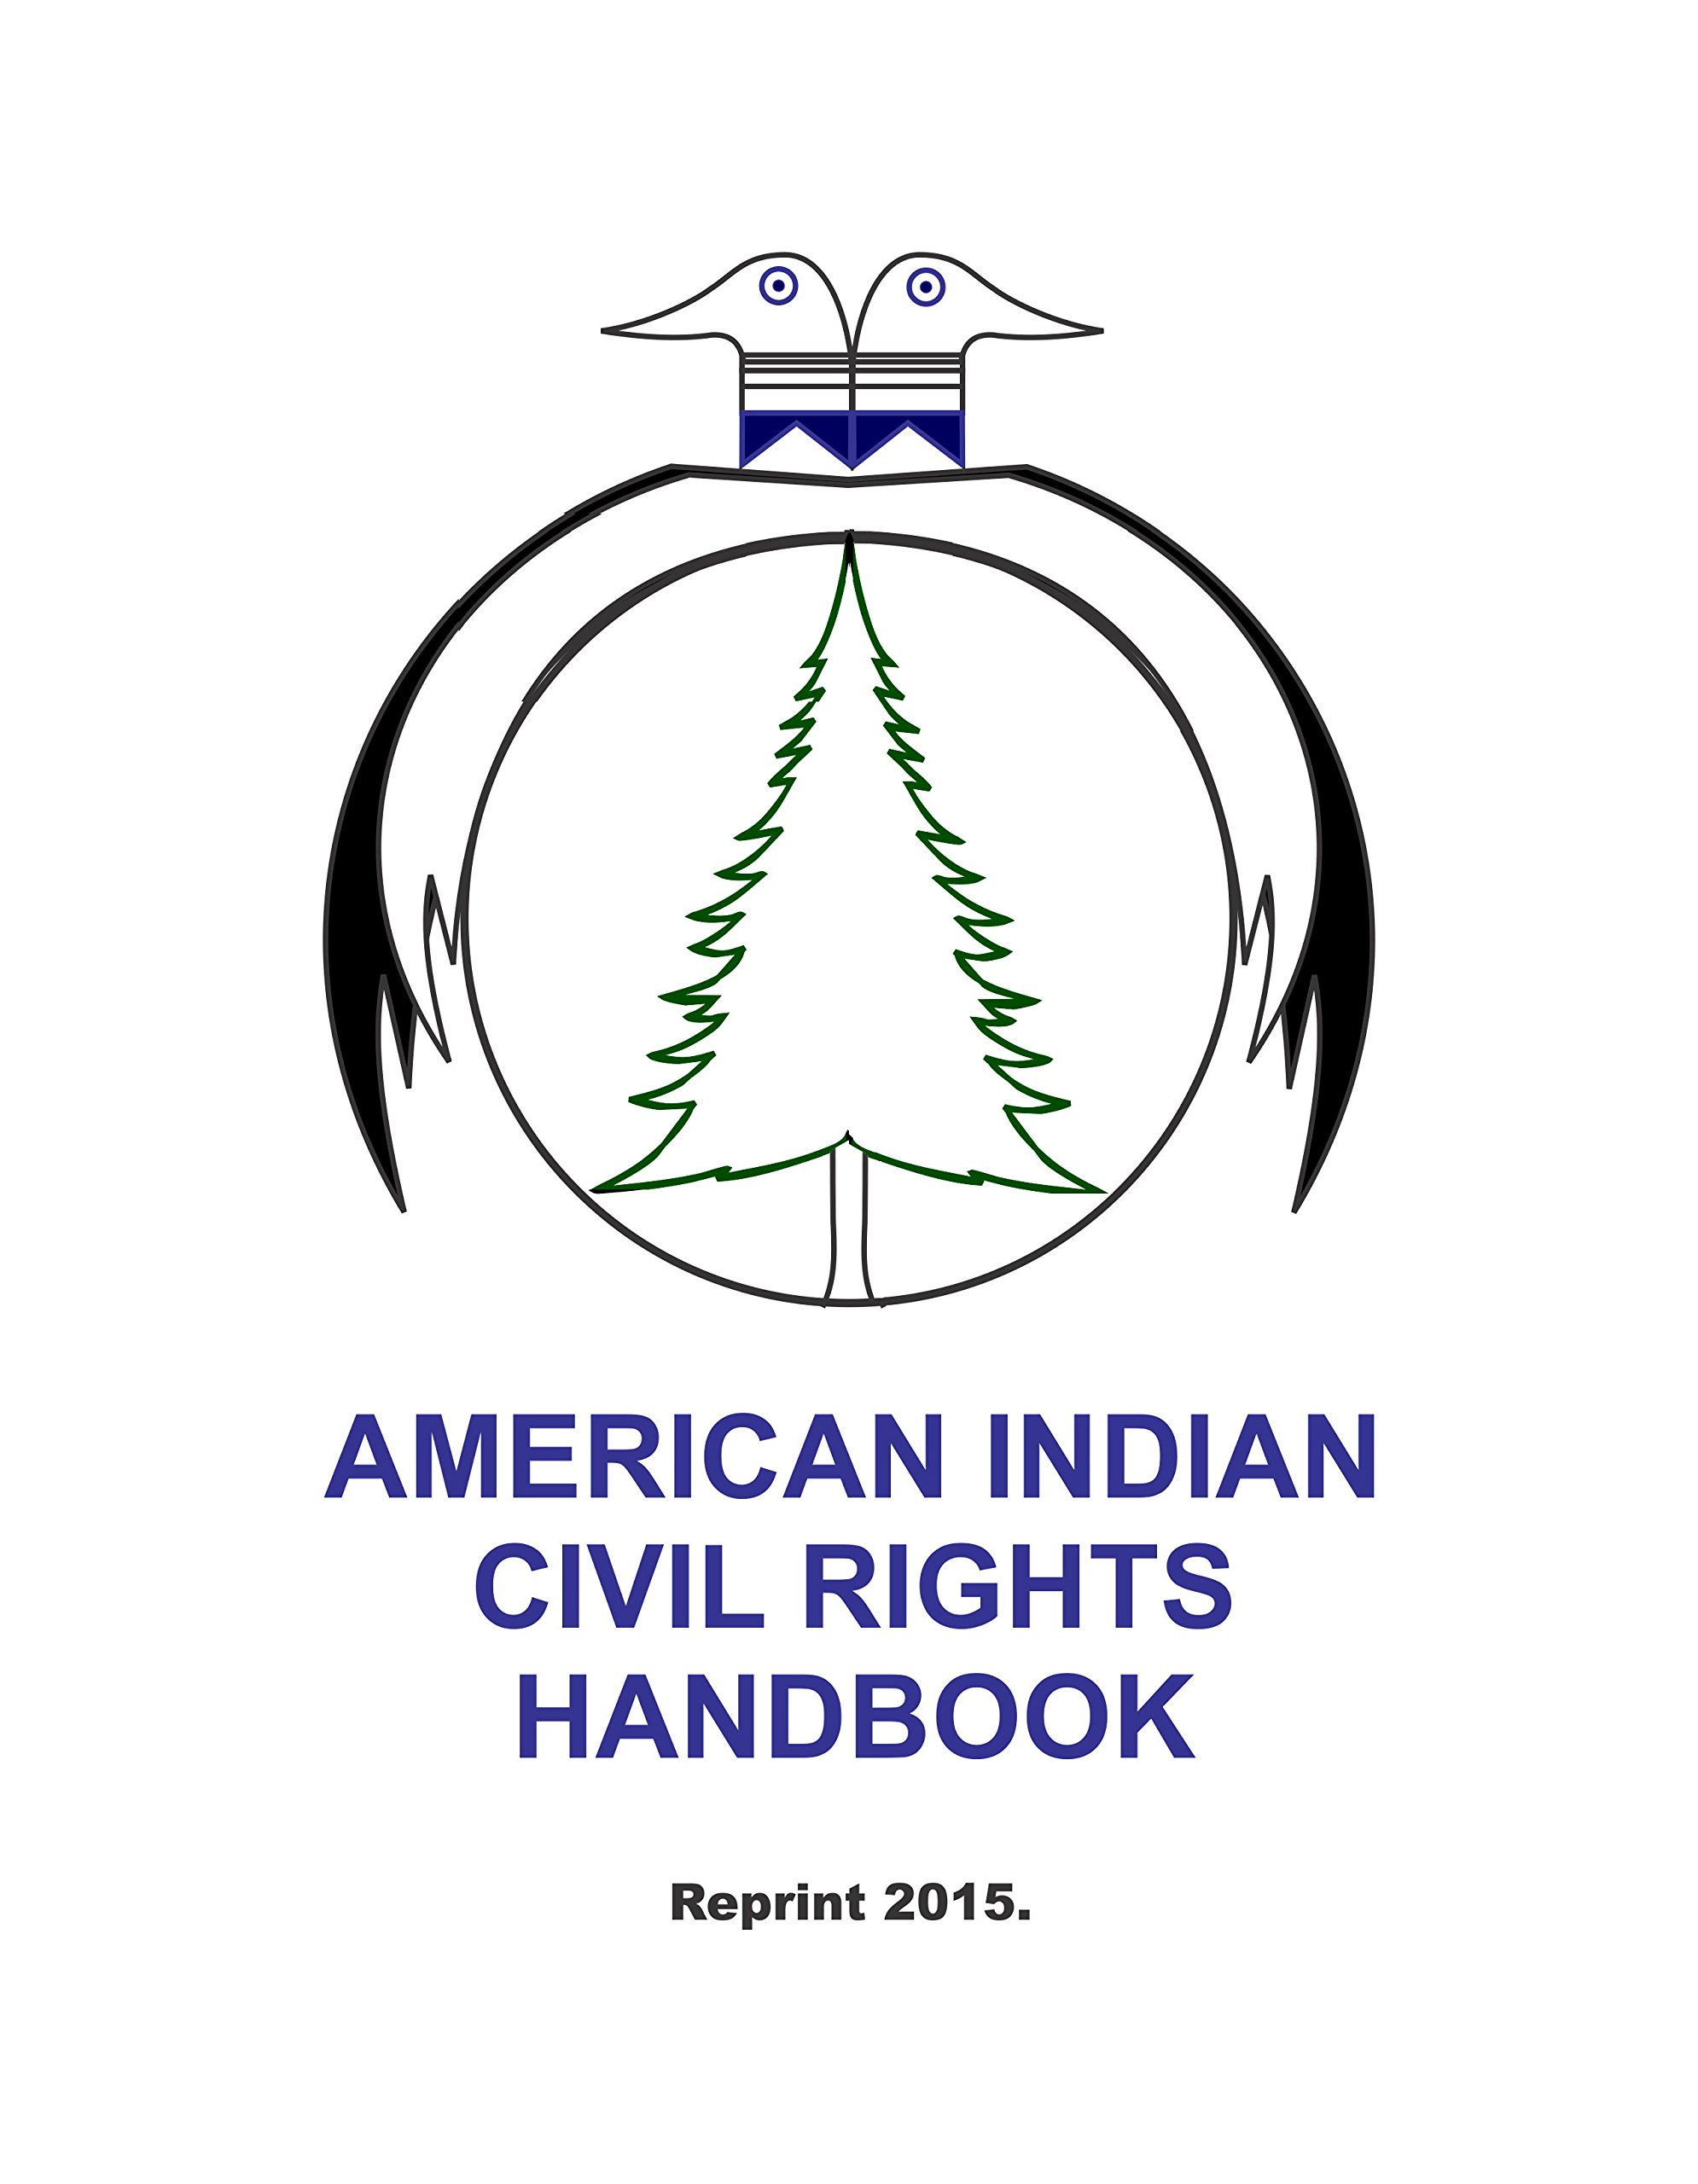 Download American Indian Civil Rights Handbook. A GUIDE TO RIGHTS AND LIBERTIES, UNDER FEDERAL, OF NATIVE AMERICANS 2015 Reprint of 1980 Edition. [Loose Leaf Publication] pdf